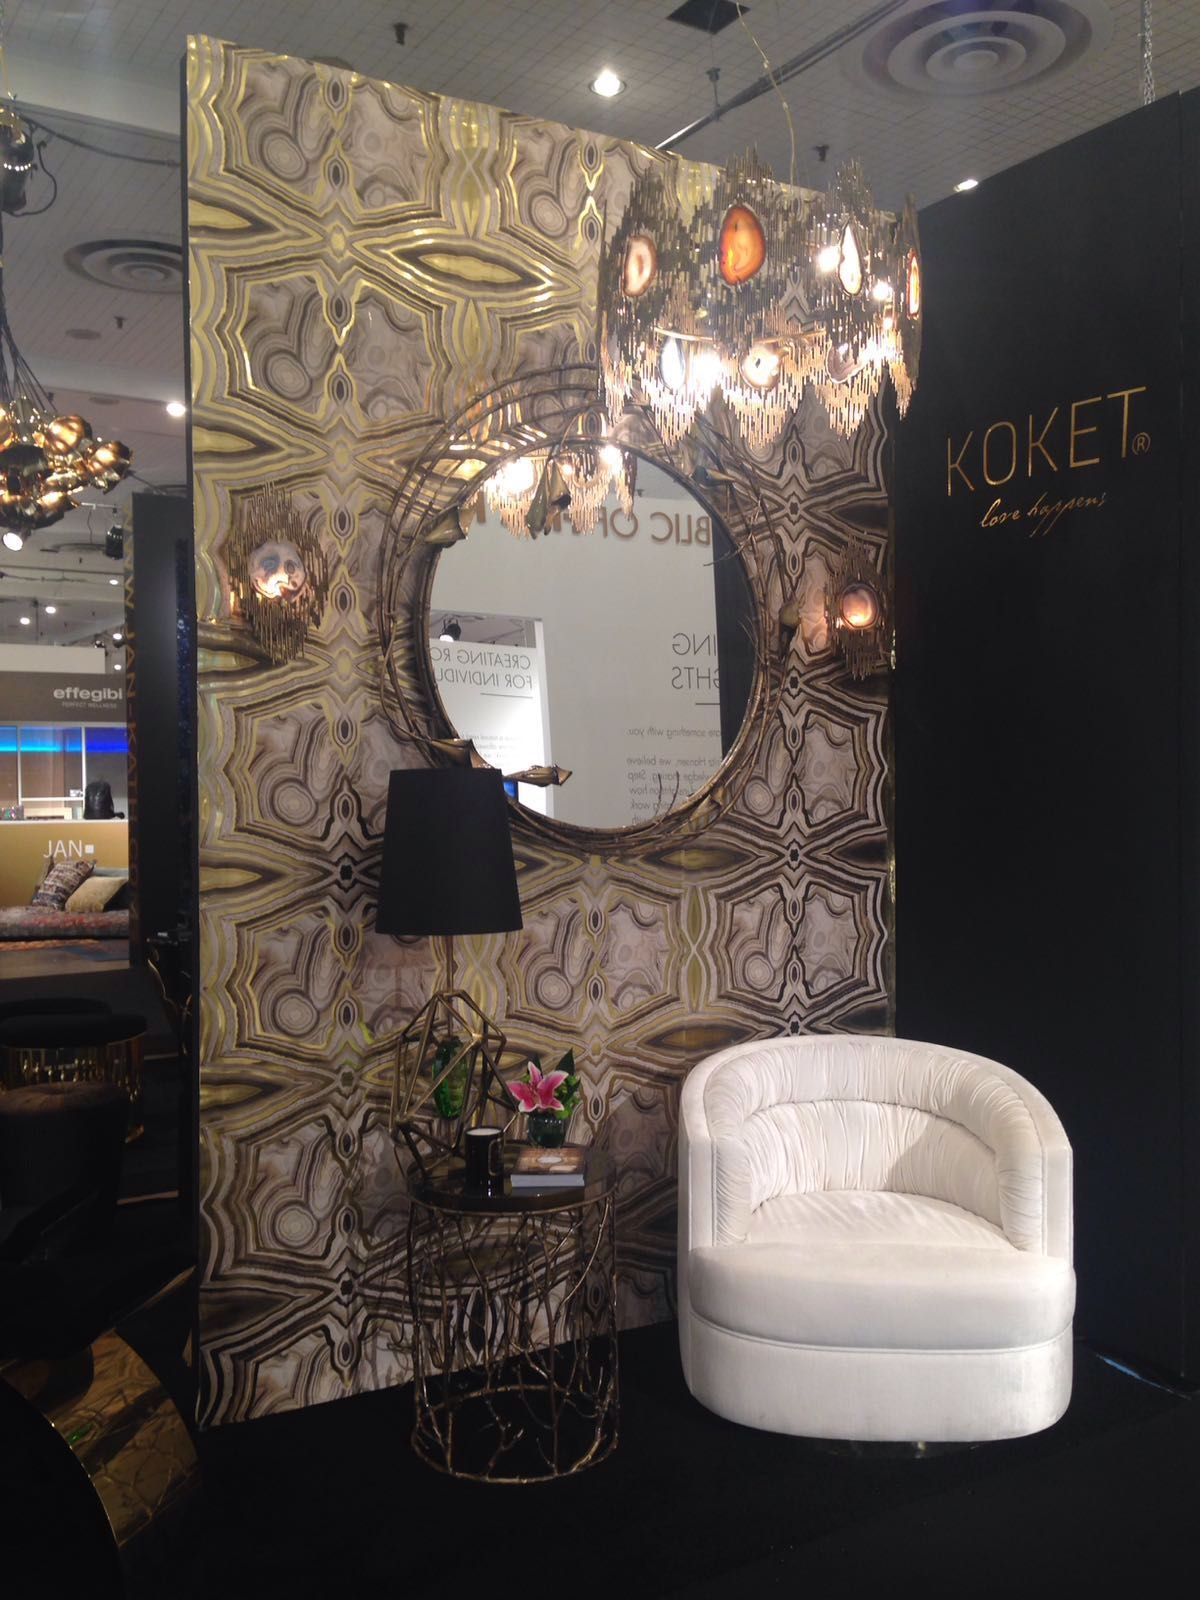 2015 Luxury Living Room Showcase Design 0062 Antique: KOKET Returns To ICFF With A Desirable Collection Of